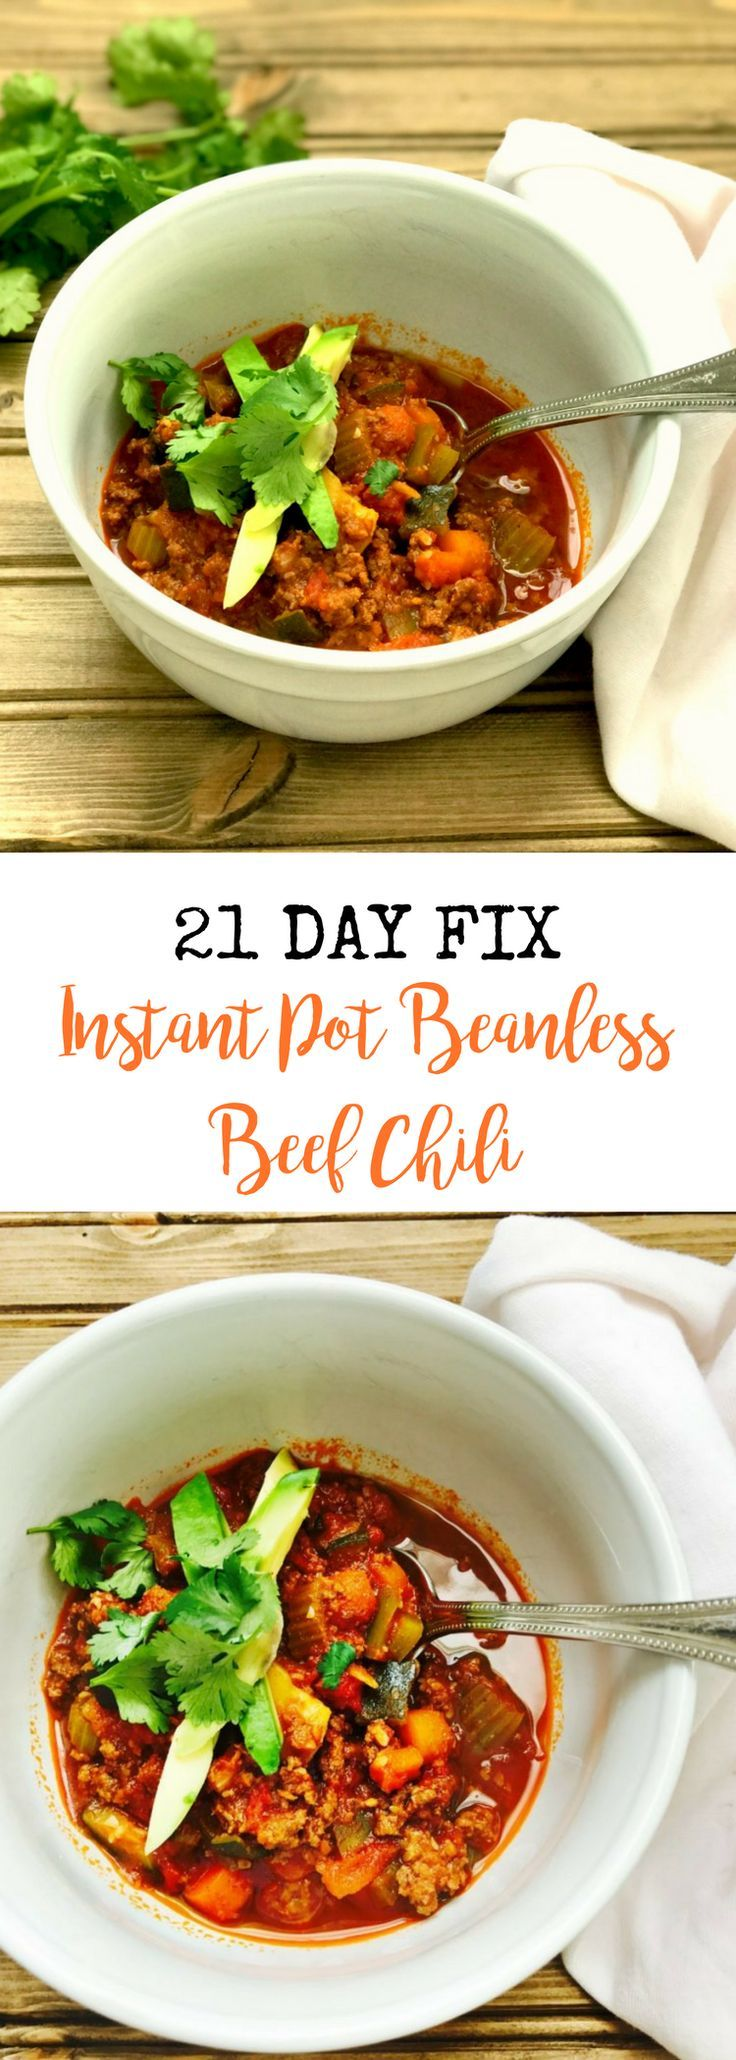 21 Day Fix Instant Pot Beanless Beef Chili {Paleo/Whole 30 Friendly} | Confessions of a Fit Foodie